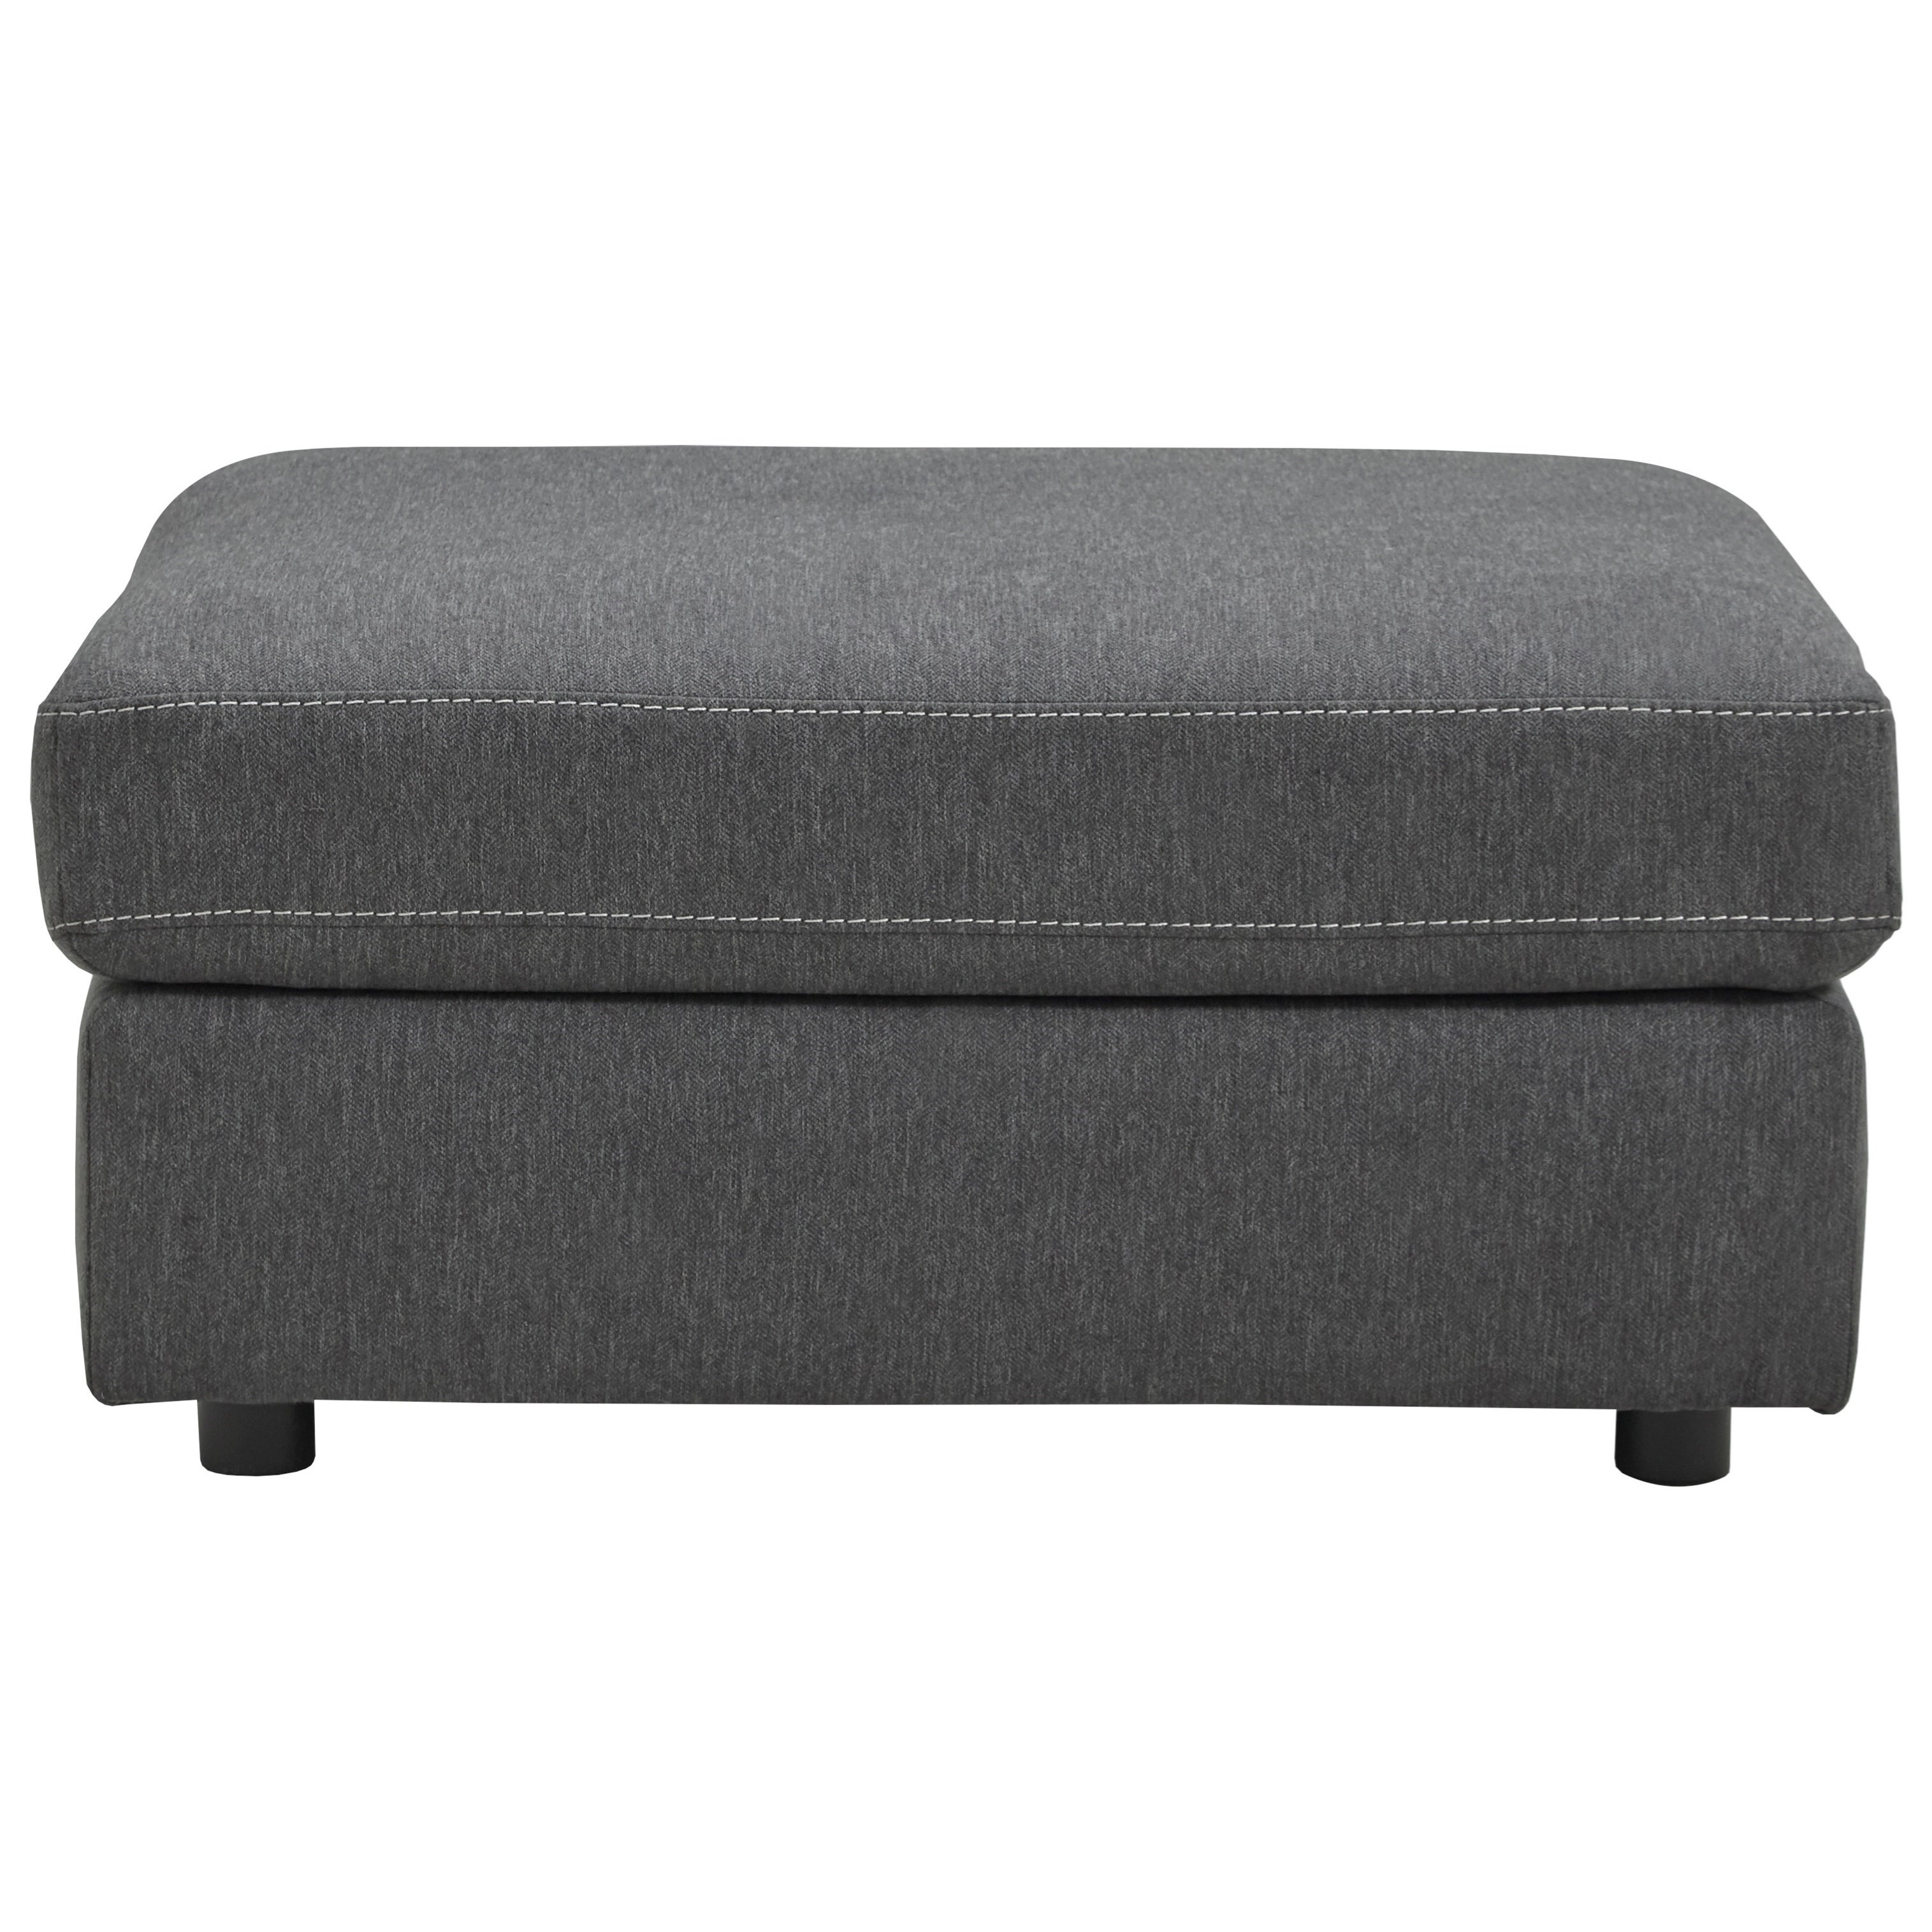 Candela Oversized Accent Ottoman by Signature Design by Ashley at Standard Furniture